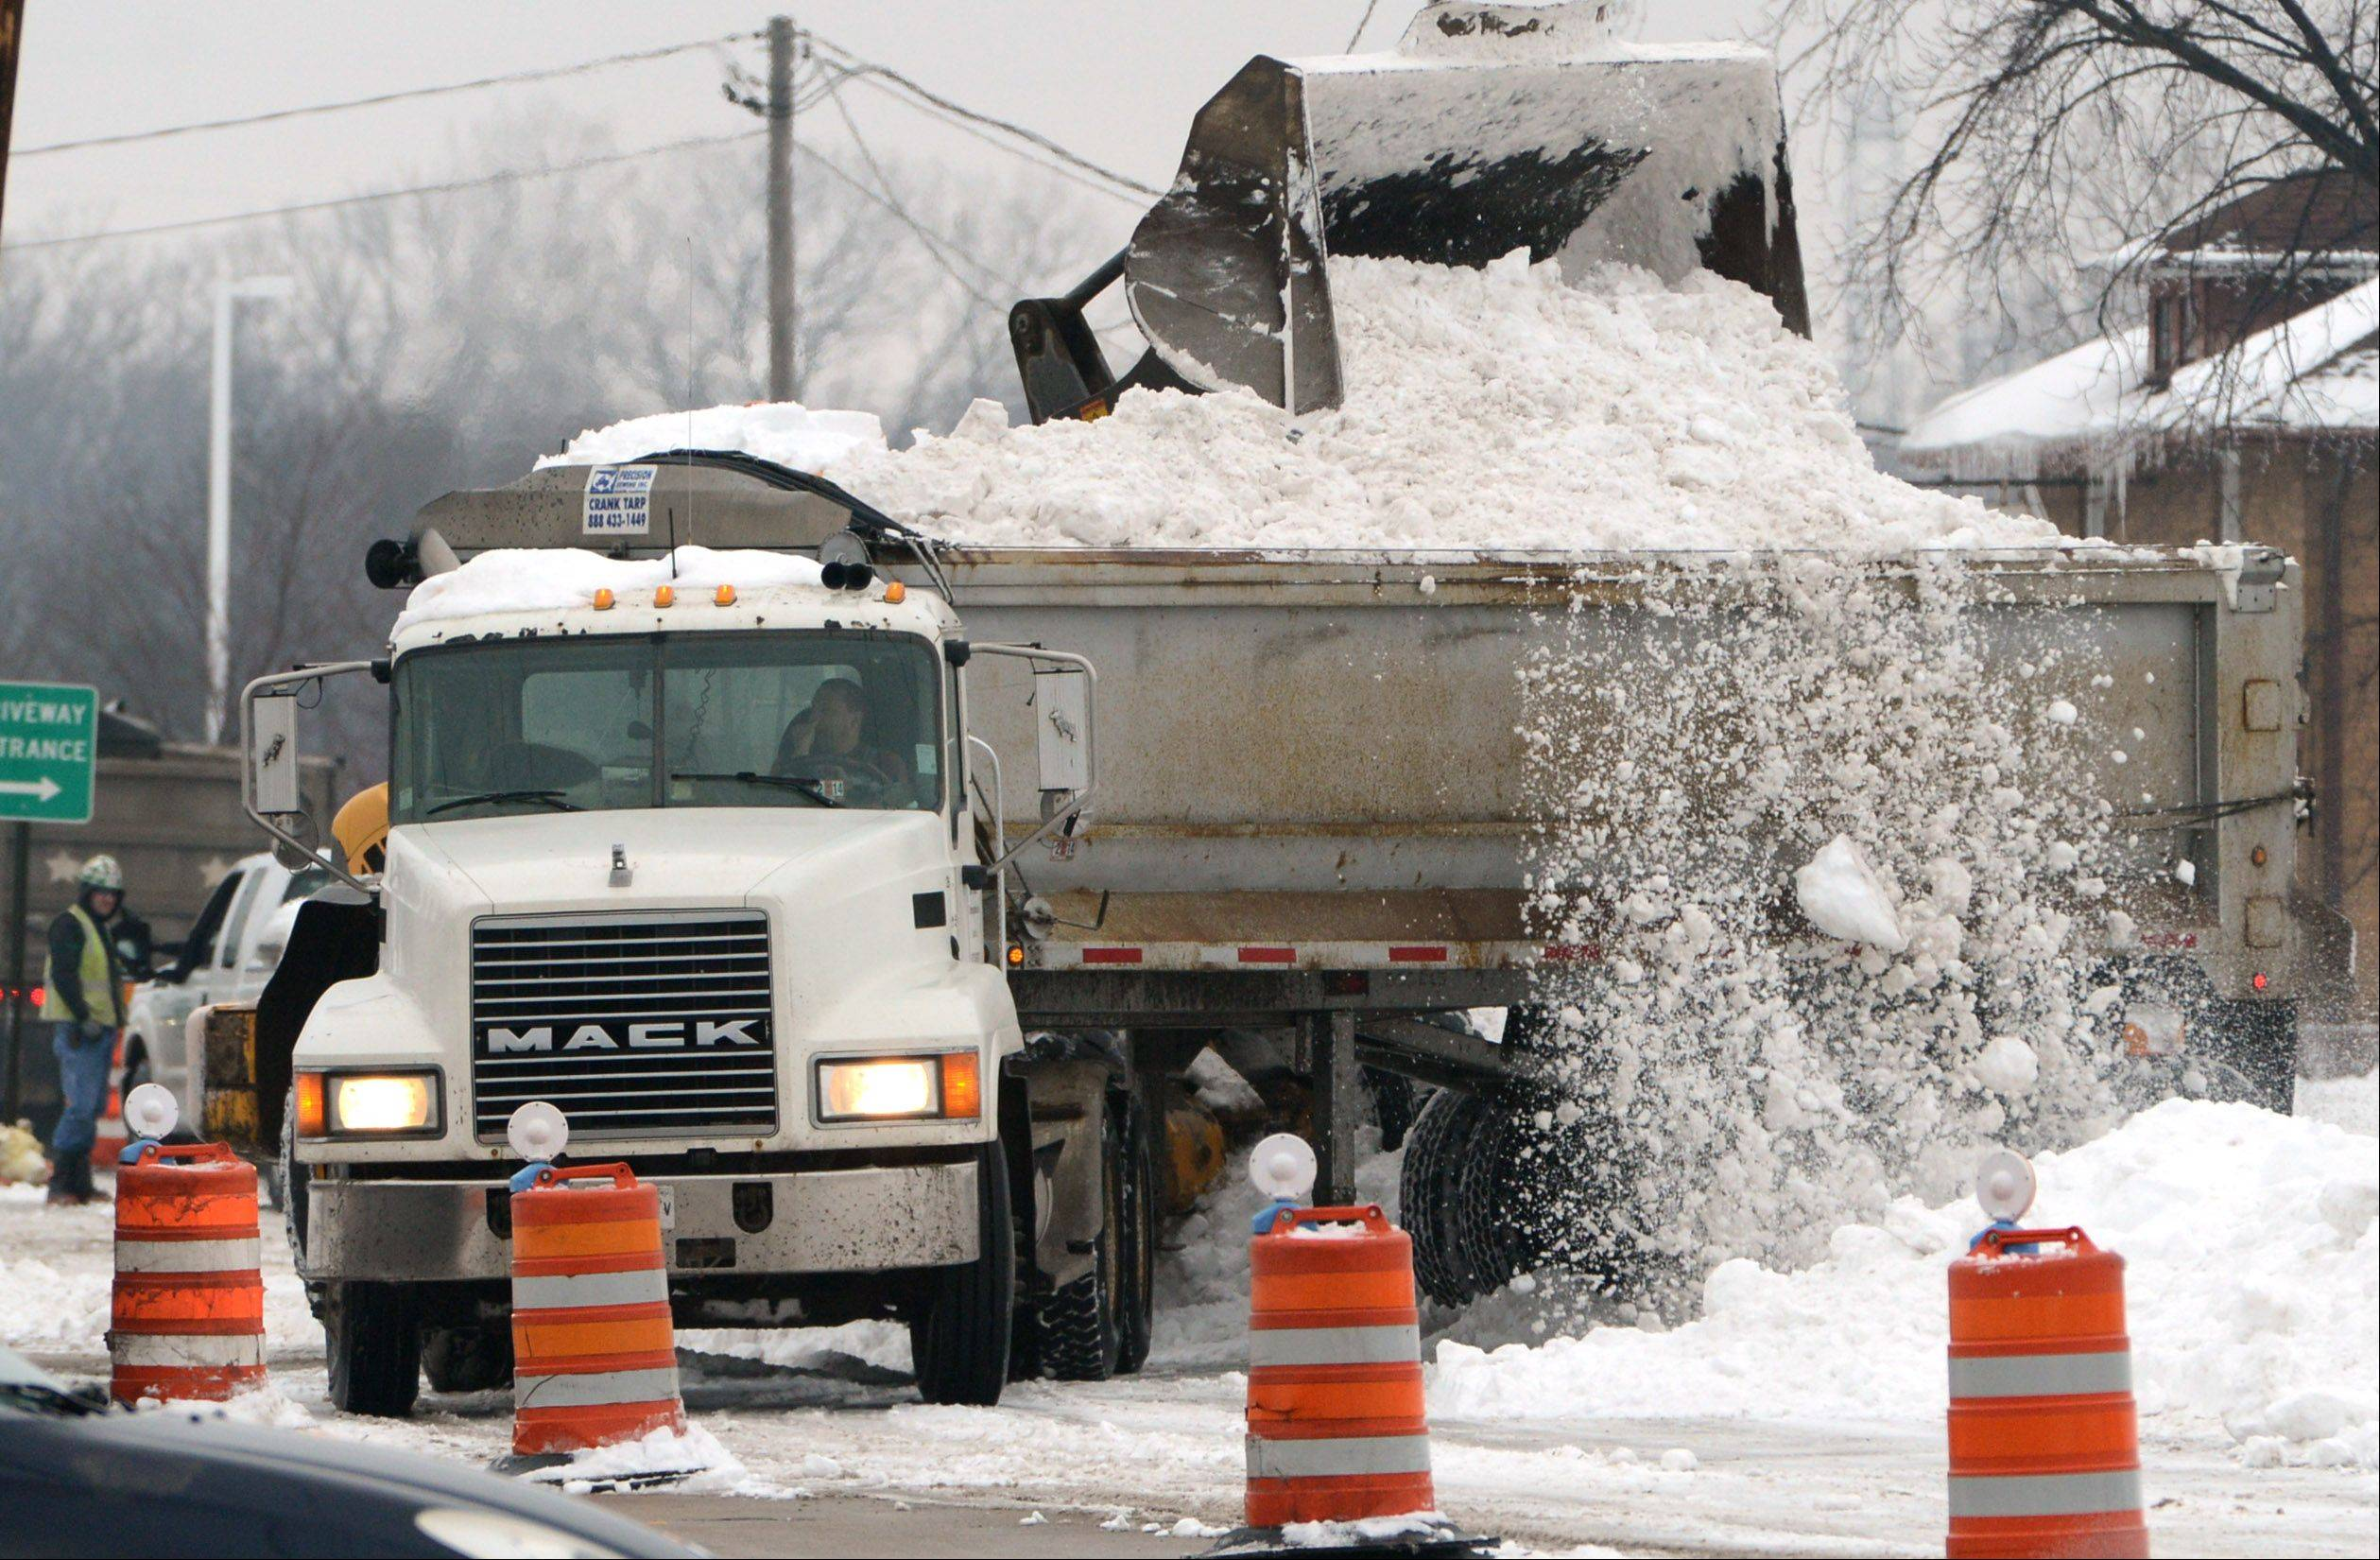 Snow is loaded for removal along Route 137 in Libertyville Friday morning. Road crews began clearing the snow so temporary pavement markings can be replaced and the new lanes opened.